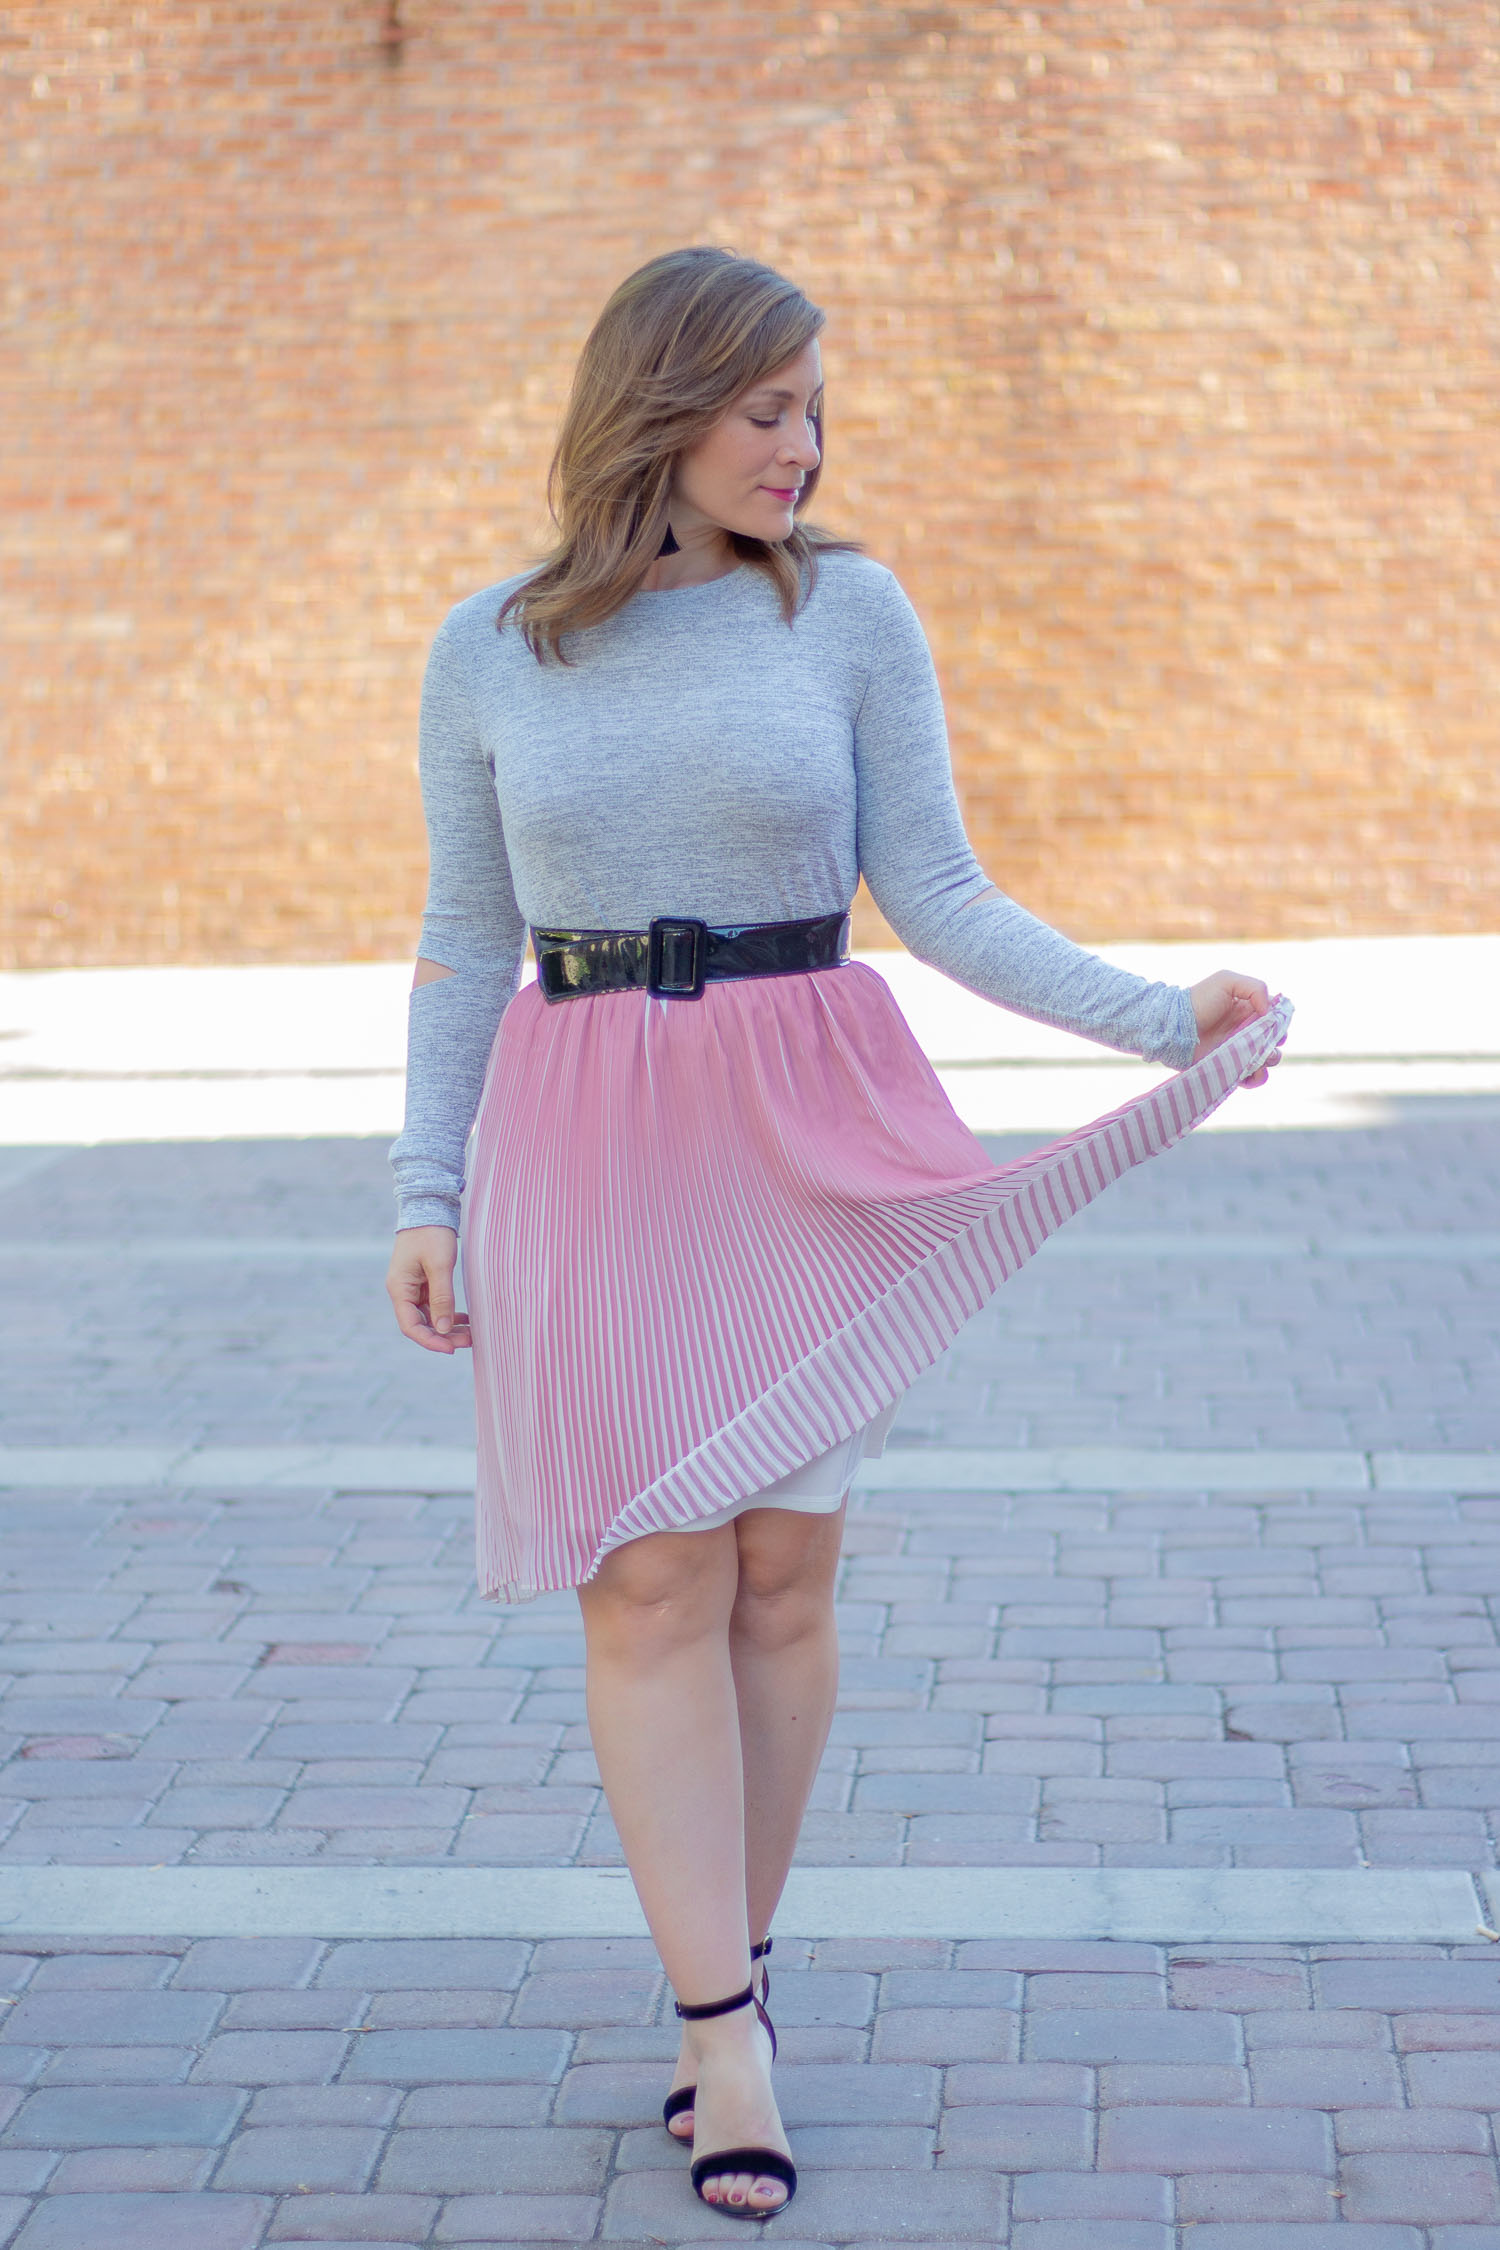 I have a thing for a cute pink skirt outfit. Summer or winter, I love pairing them with sandals or booties, sleeveless tops or sweaters.